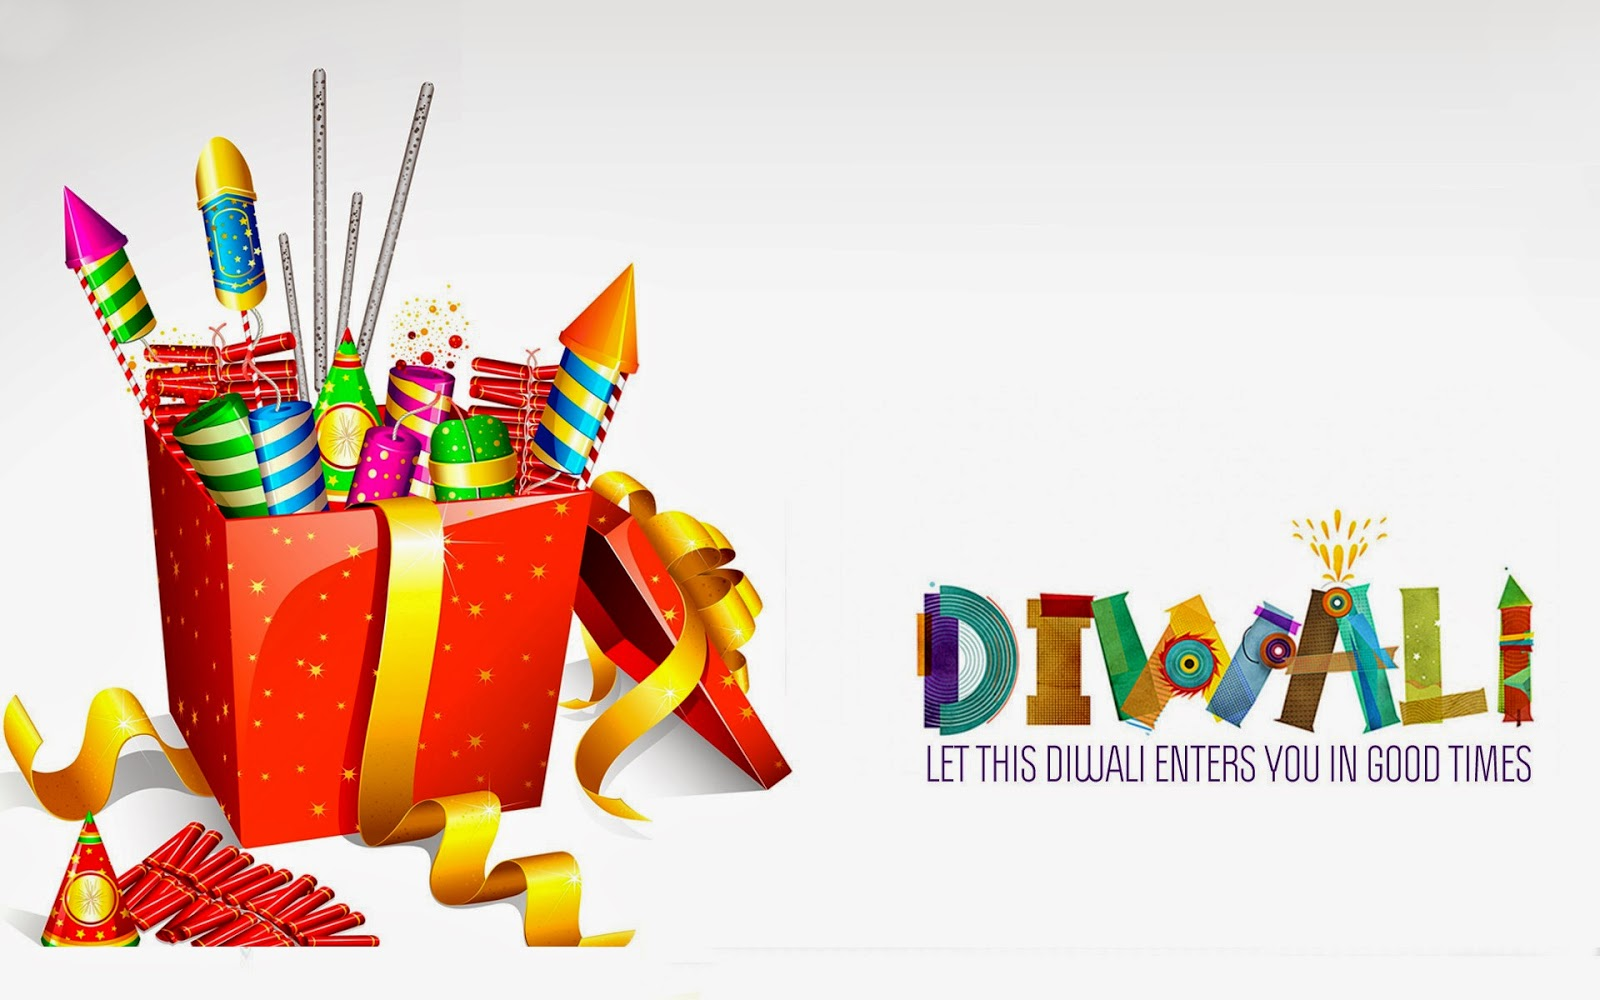 Happy diwali 2014 greeting and wishes hd wallpapers free download free download diwali greetings cards and images m4hsunfo